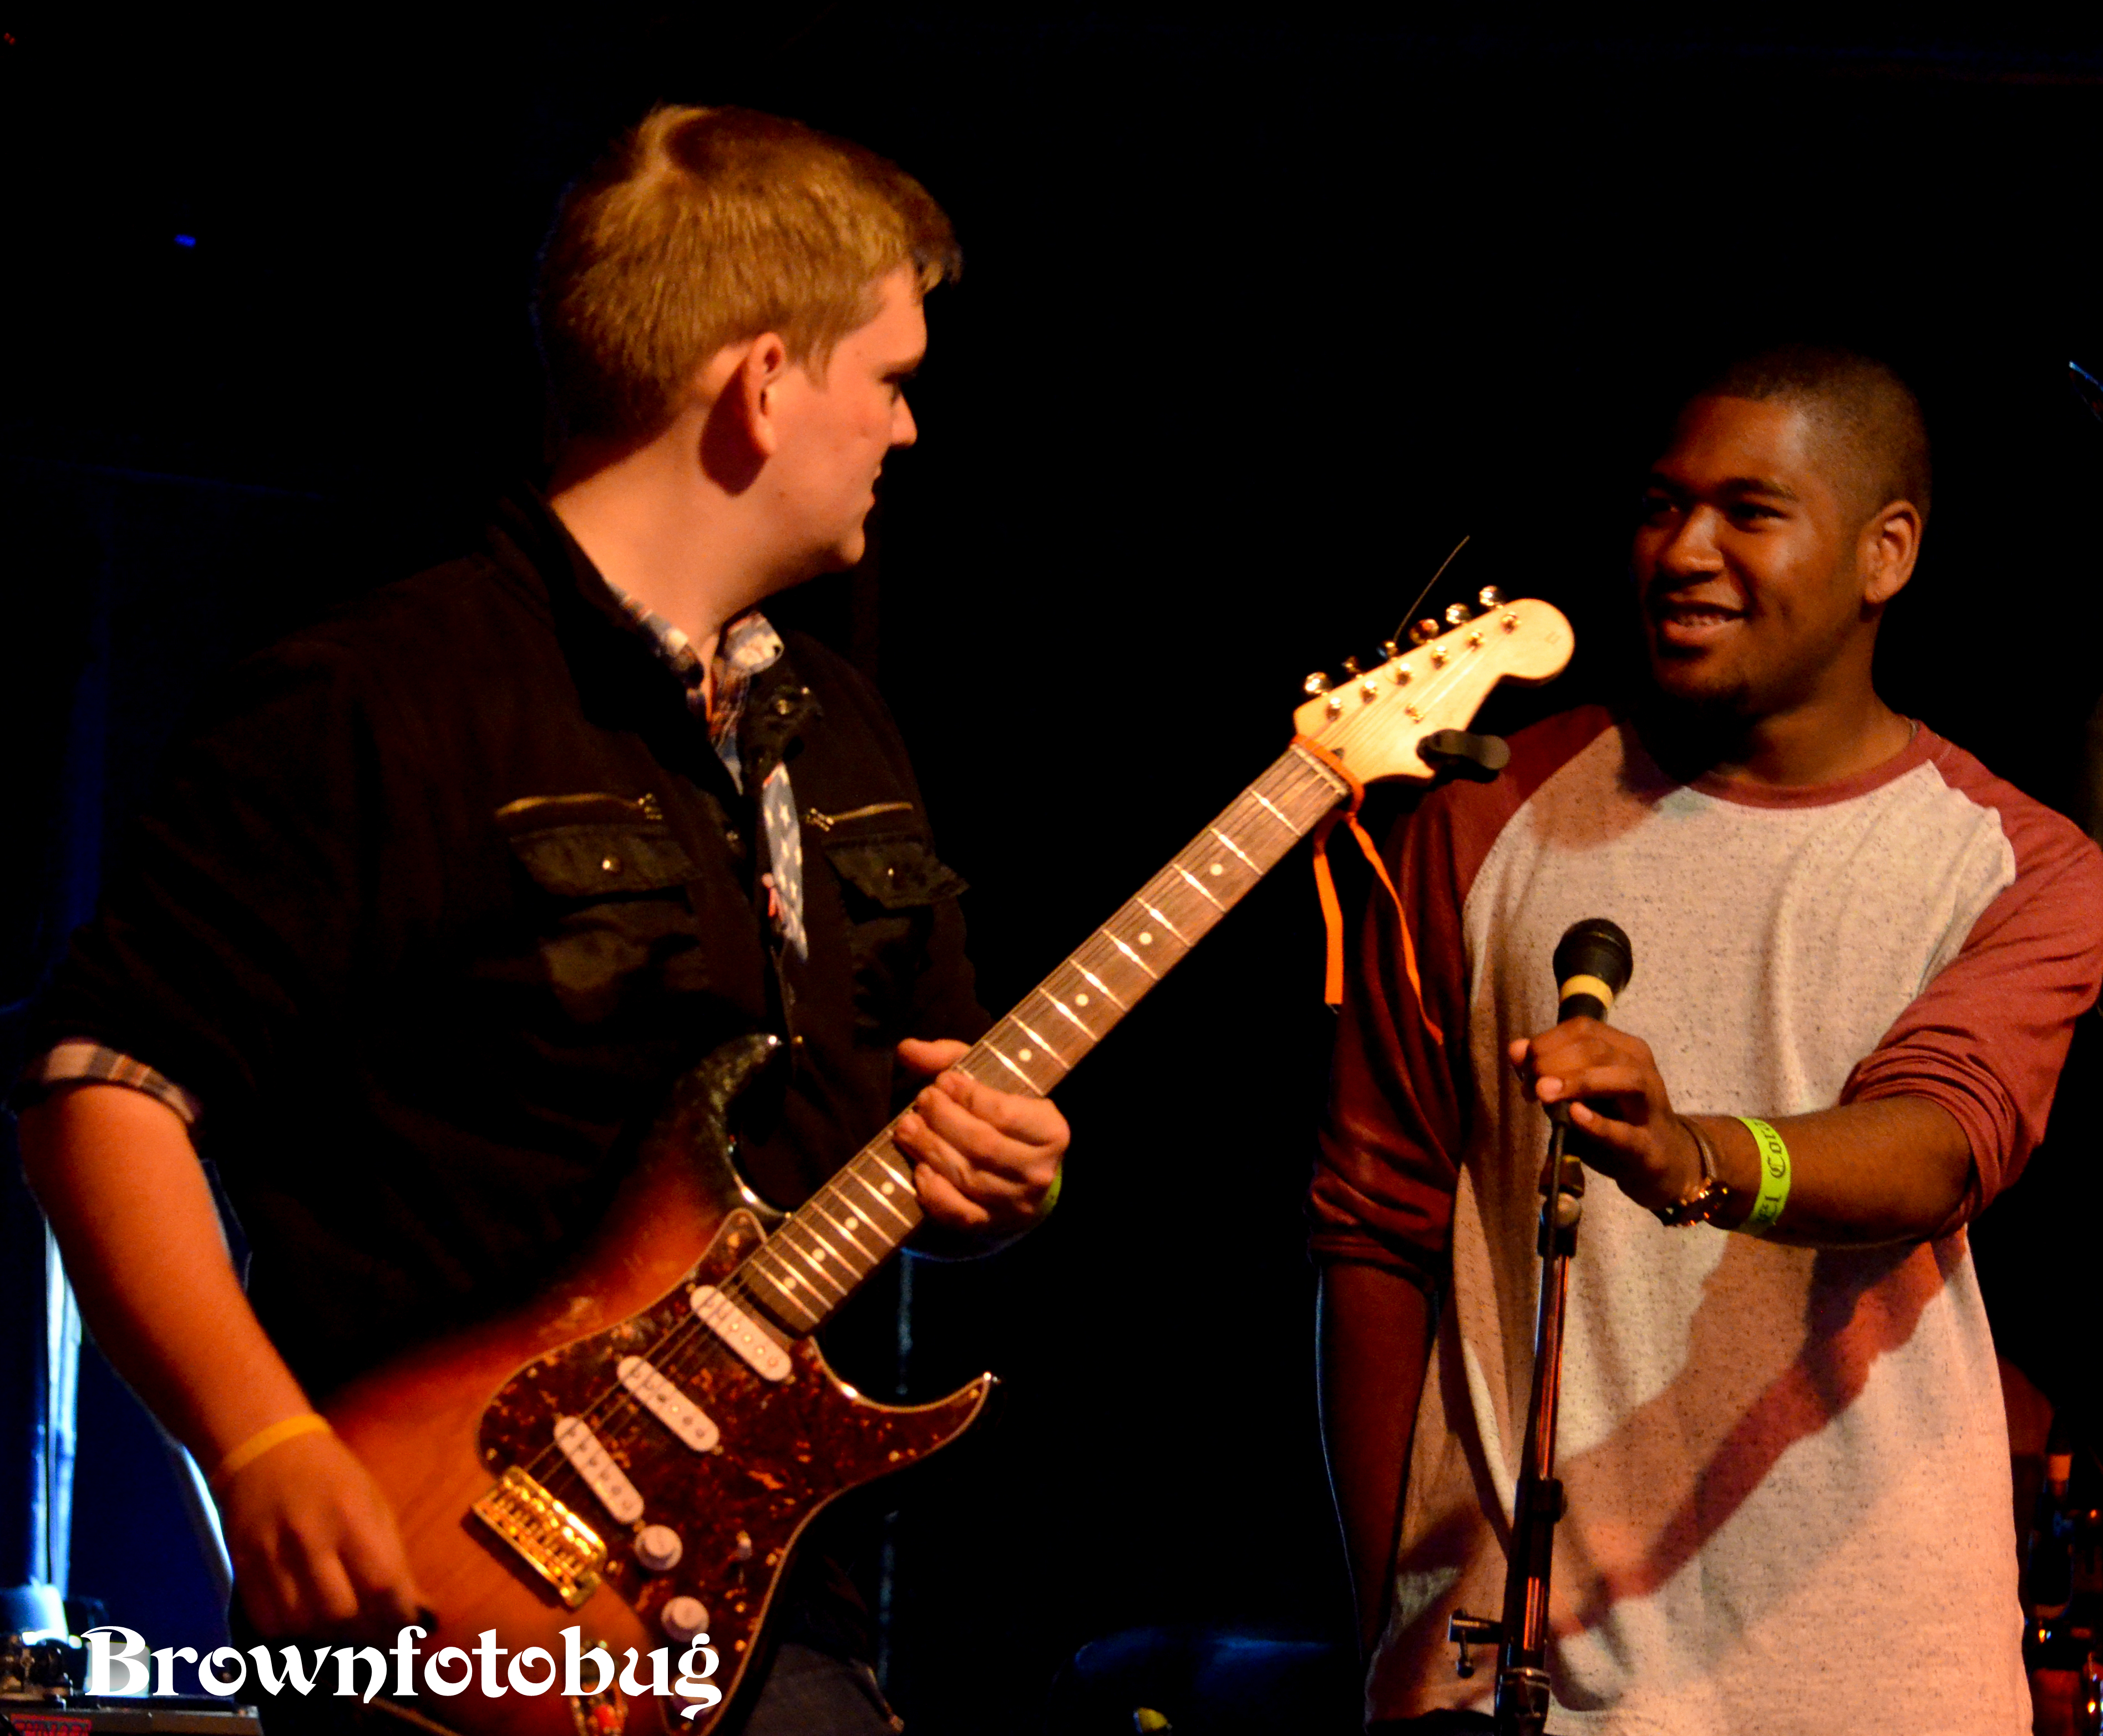 Pacific Drive Live at El Corazon (Photo by Arlene Brown)